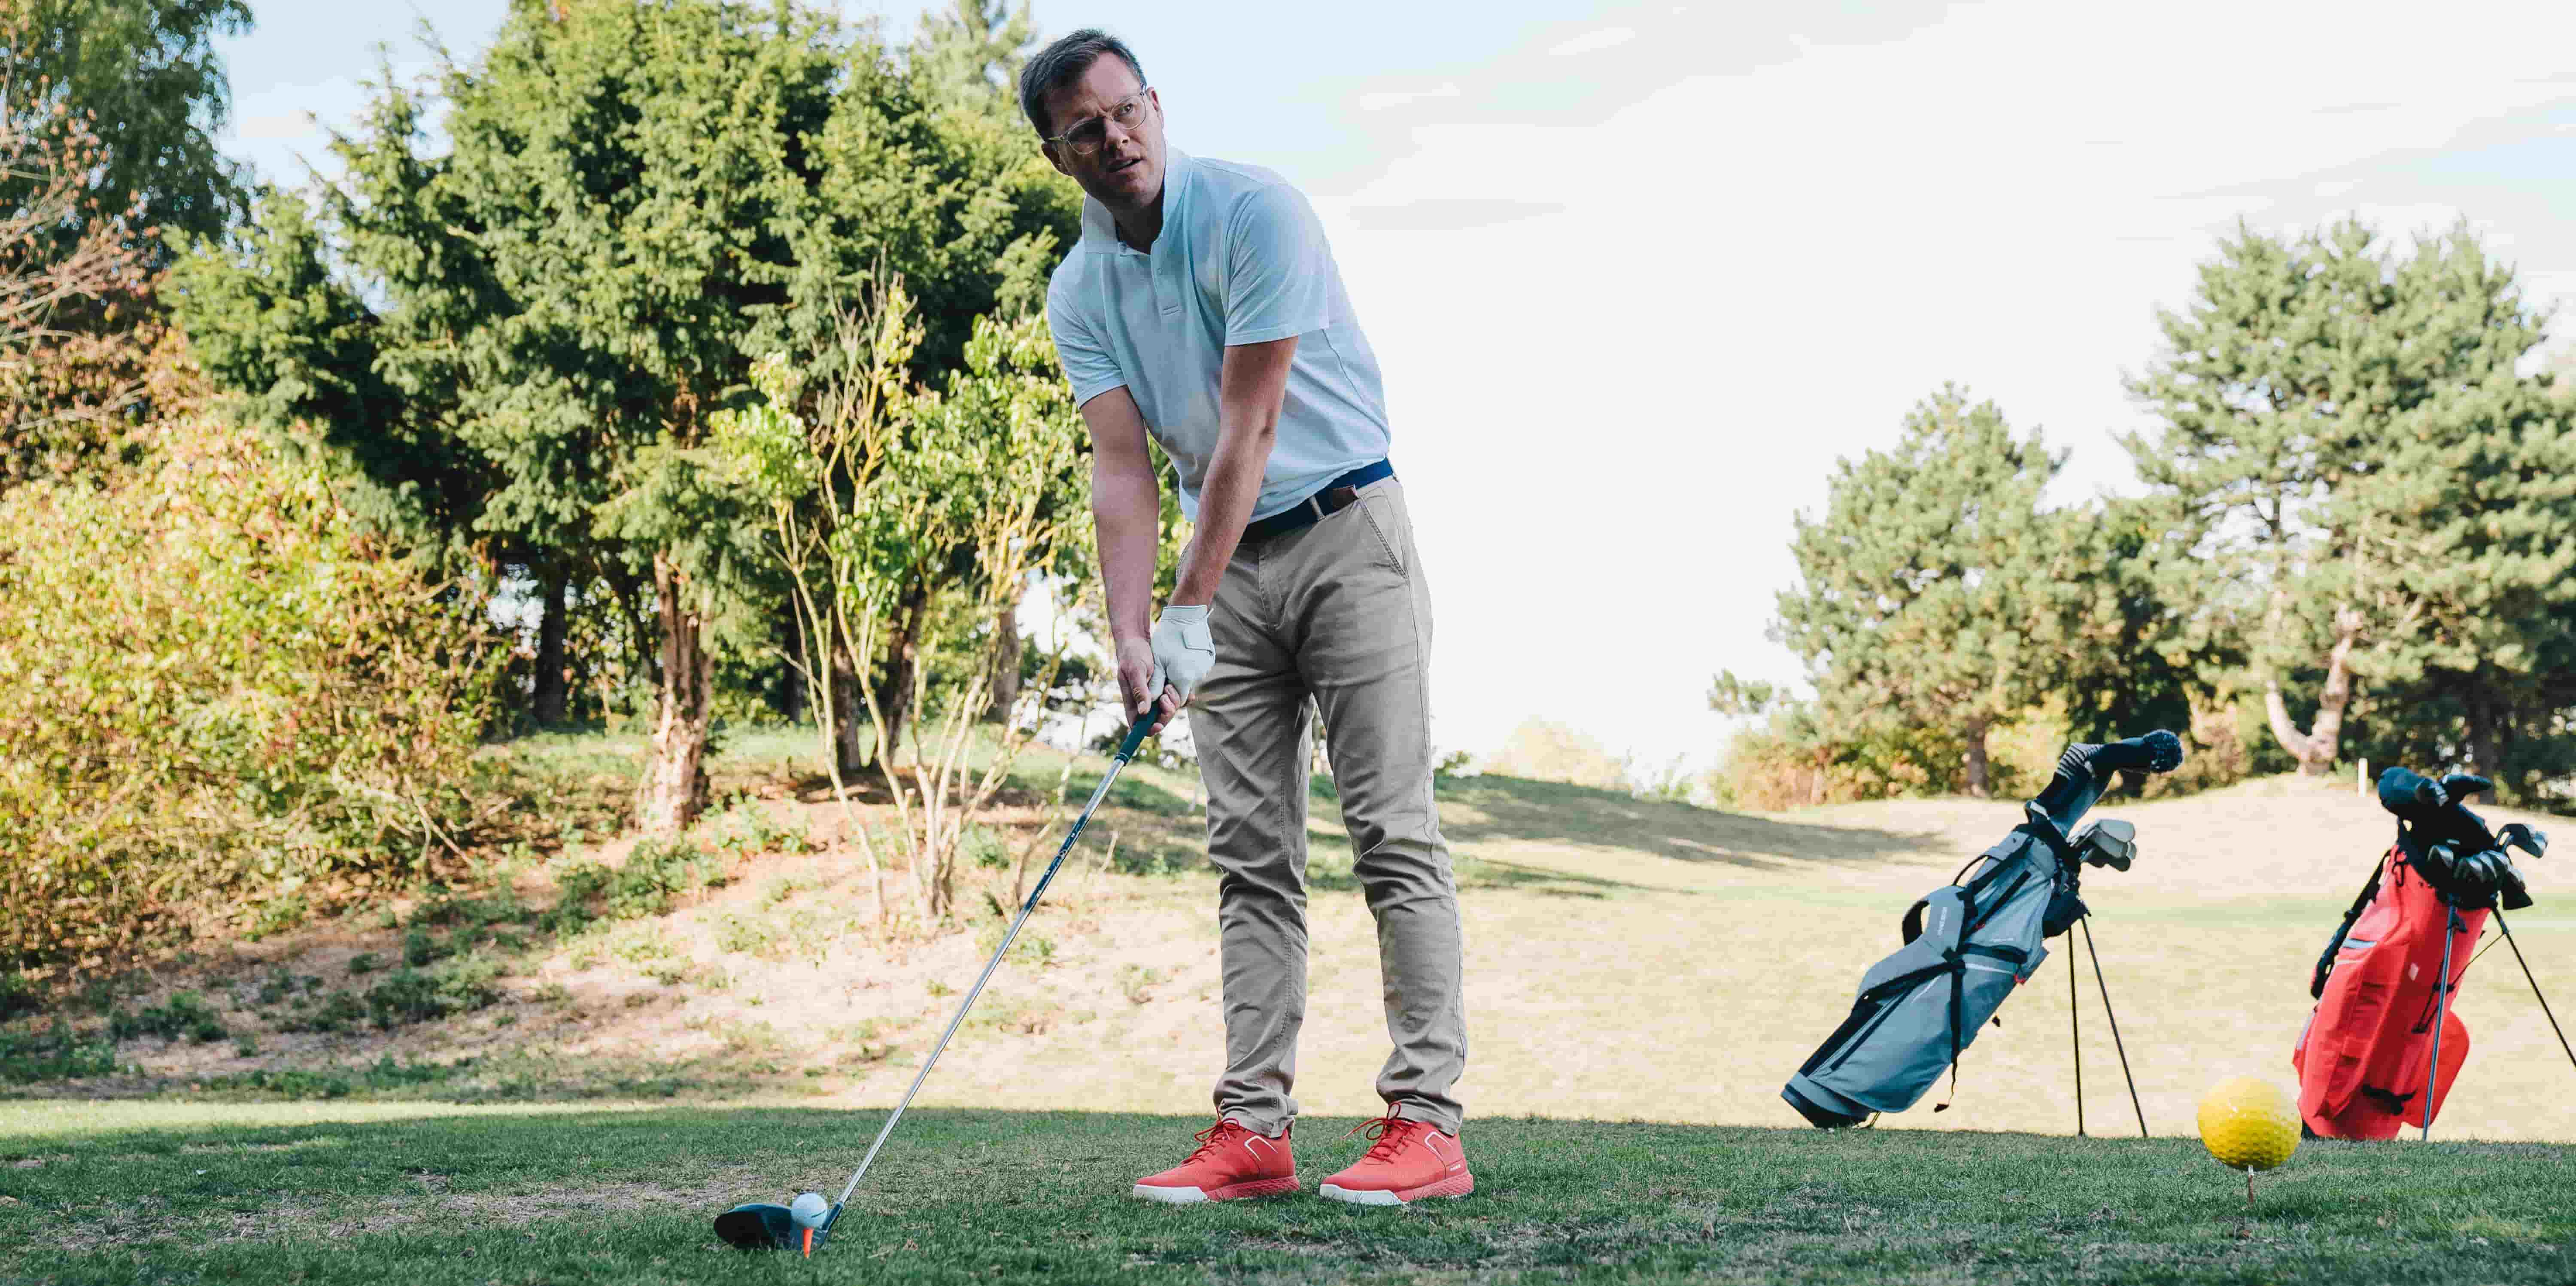 Get into Golf: Golf Tips for Beginners